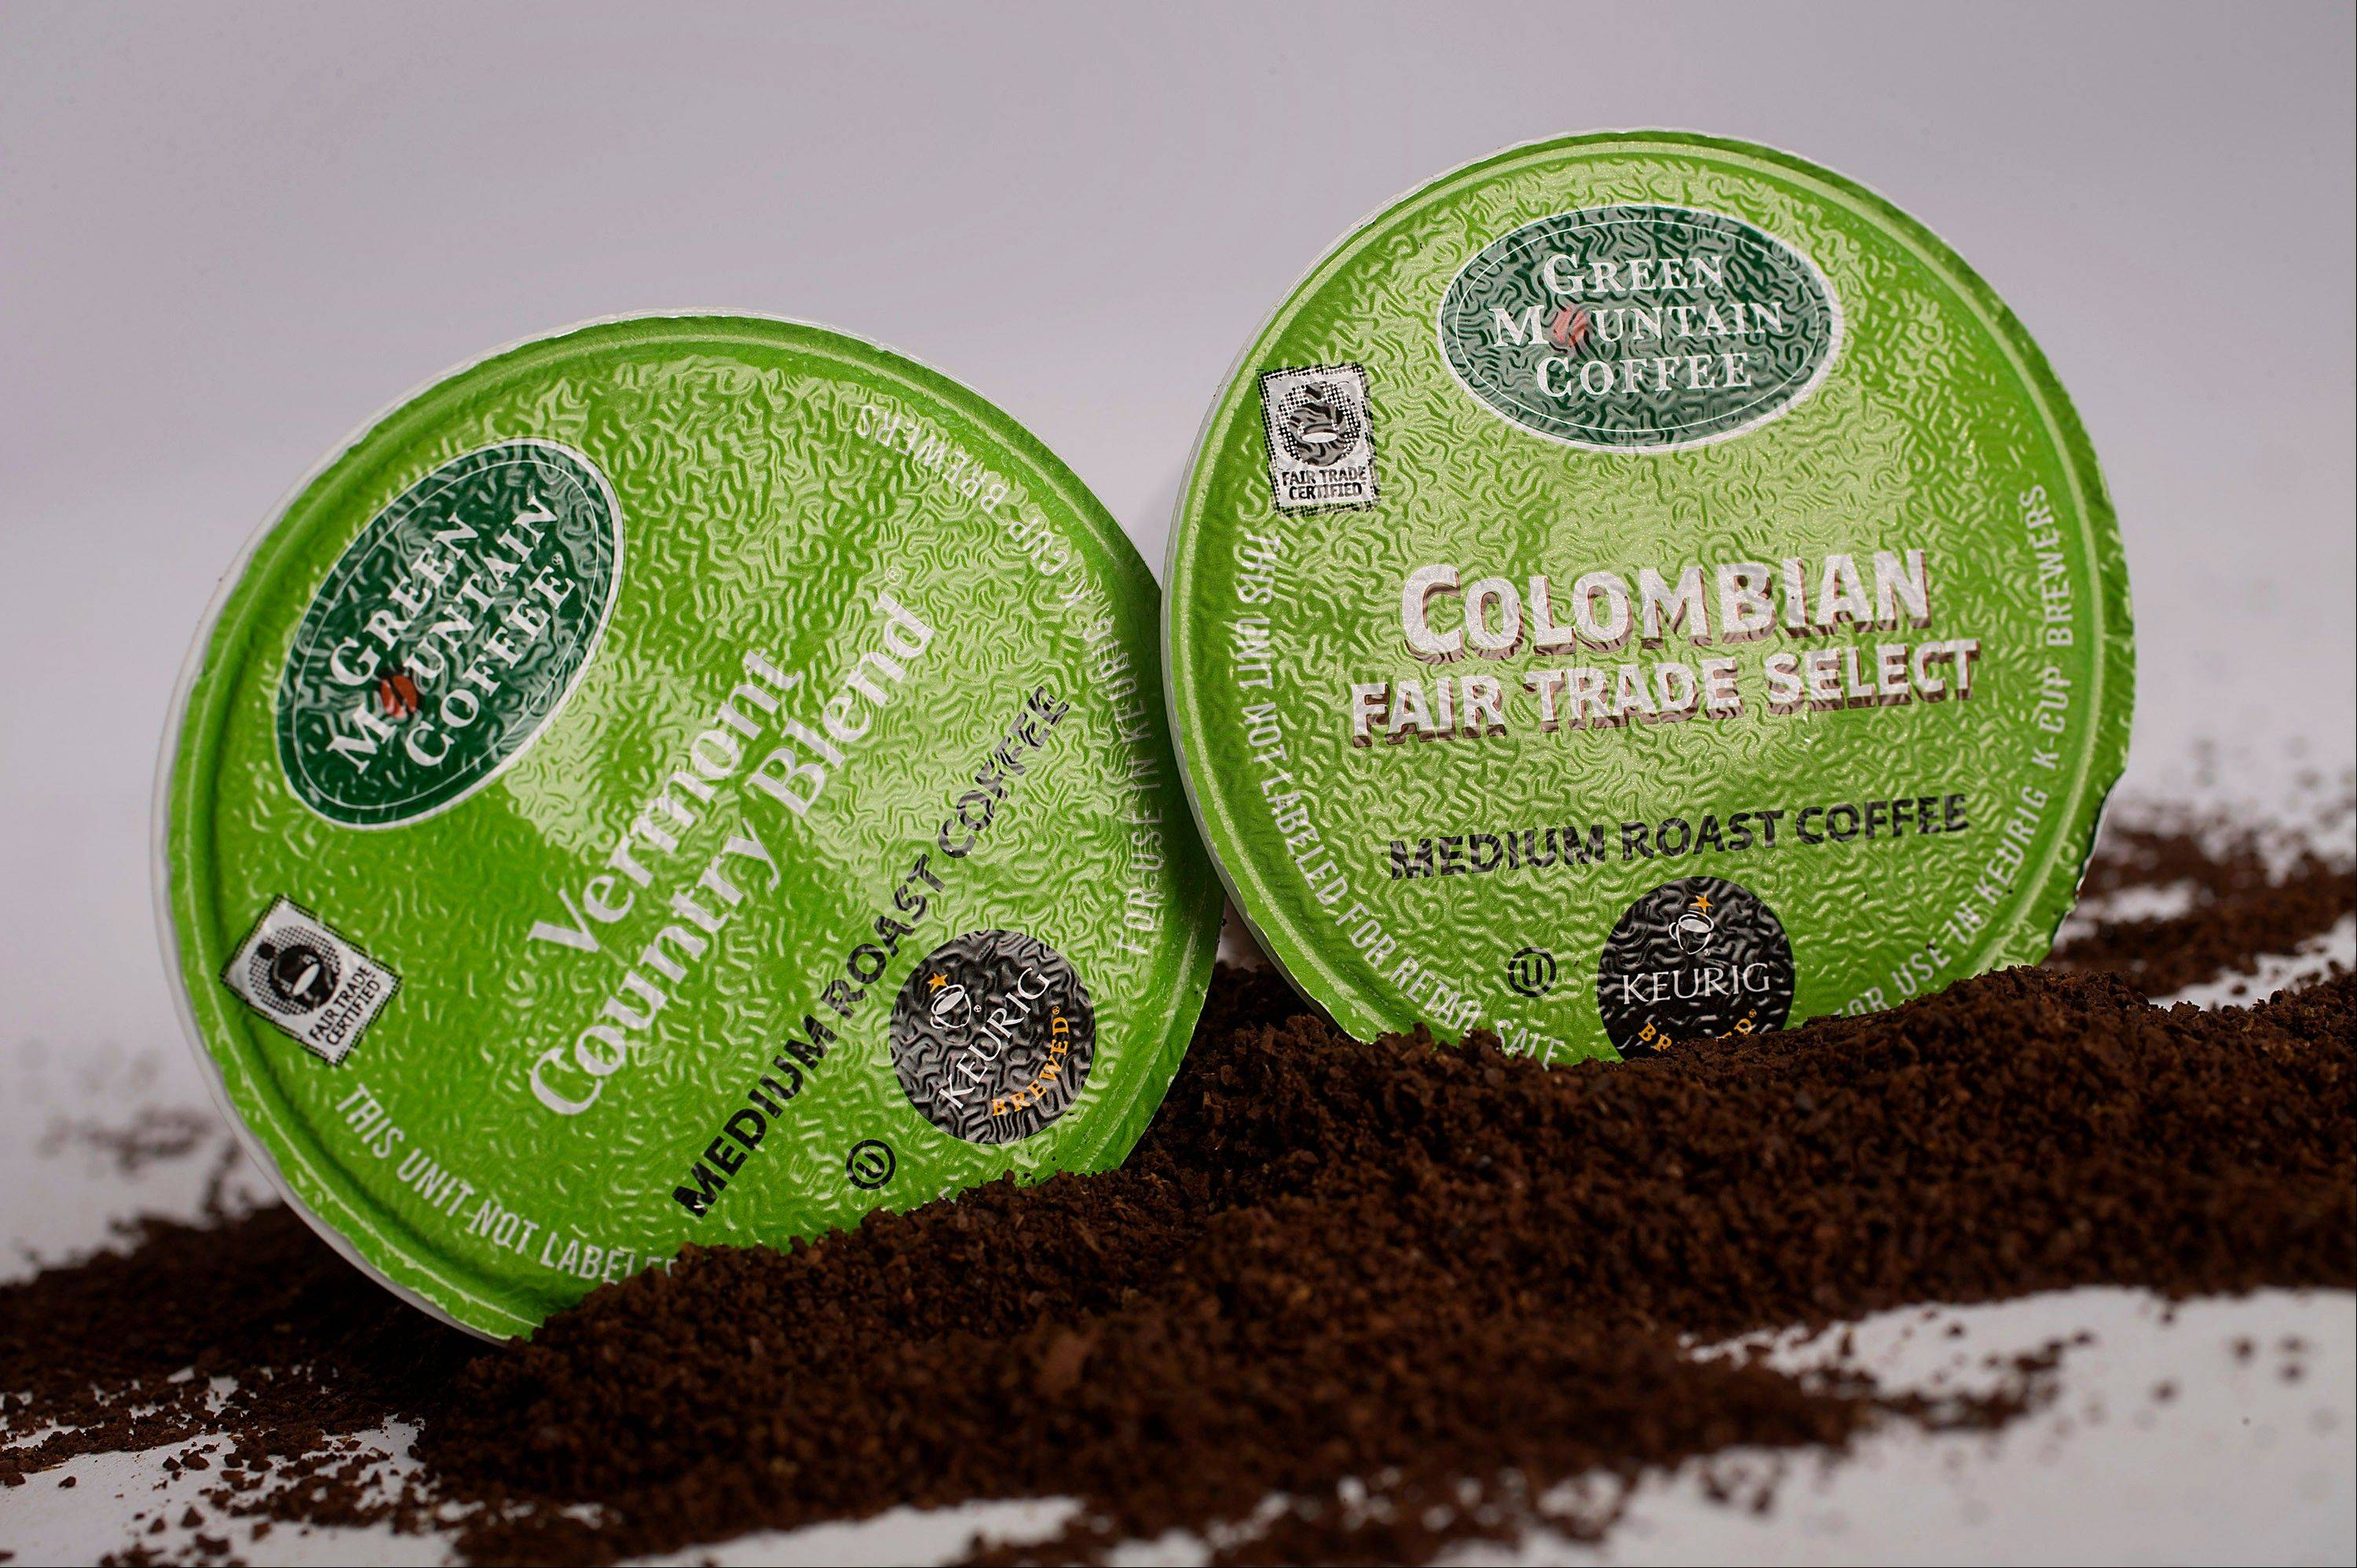 Coca-Cola said Wednesday that it's buying a 10 percent stake in Green Mountain Coffee Roasters Inc. for $1.25 billion as part of an agreement to bring its familiar brands into the fast-growing at-home market.